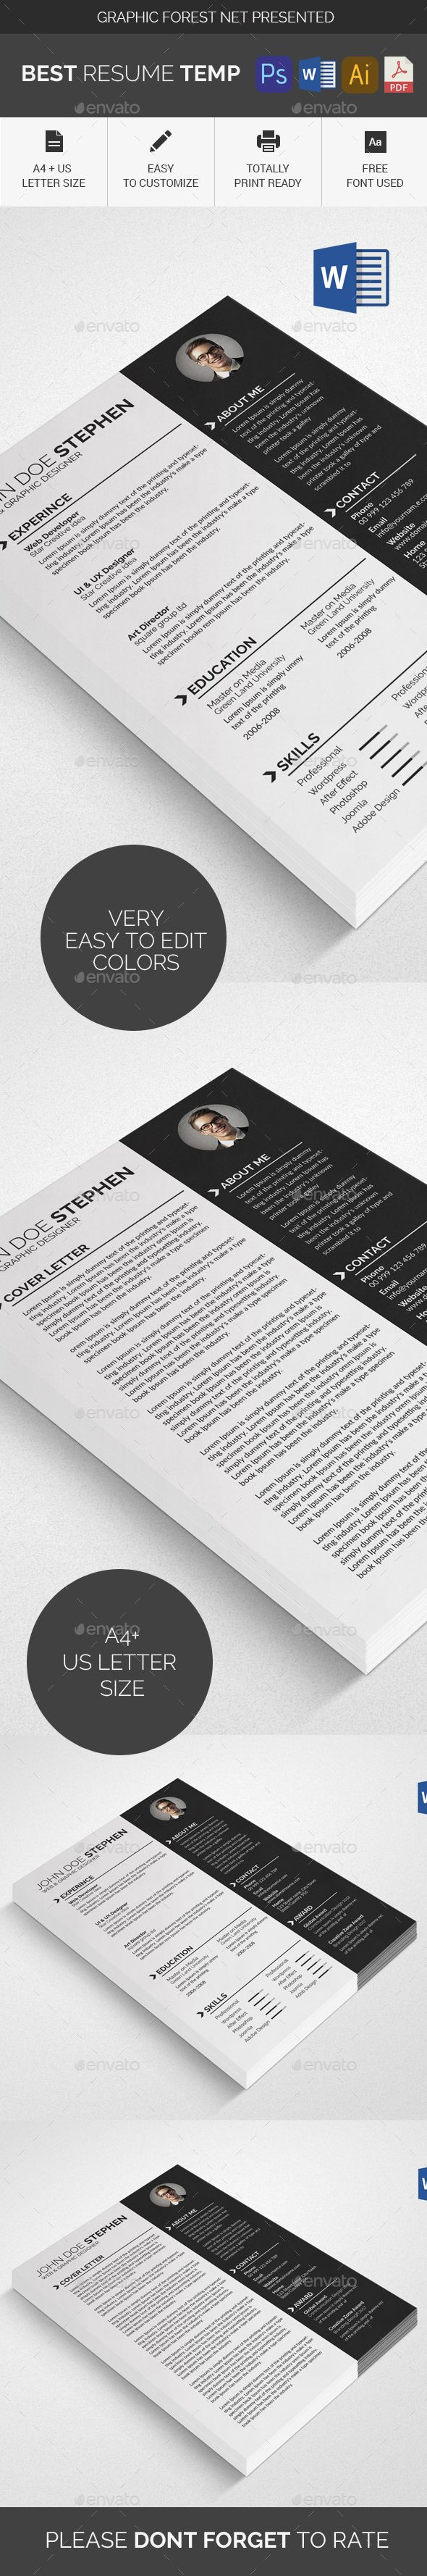 61 best cv images on Pinterest | Resume, Curriculum and Resume cv